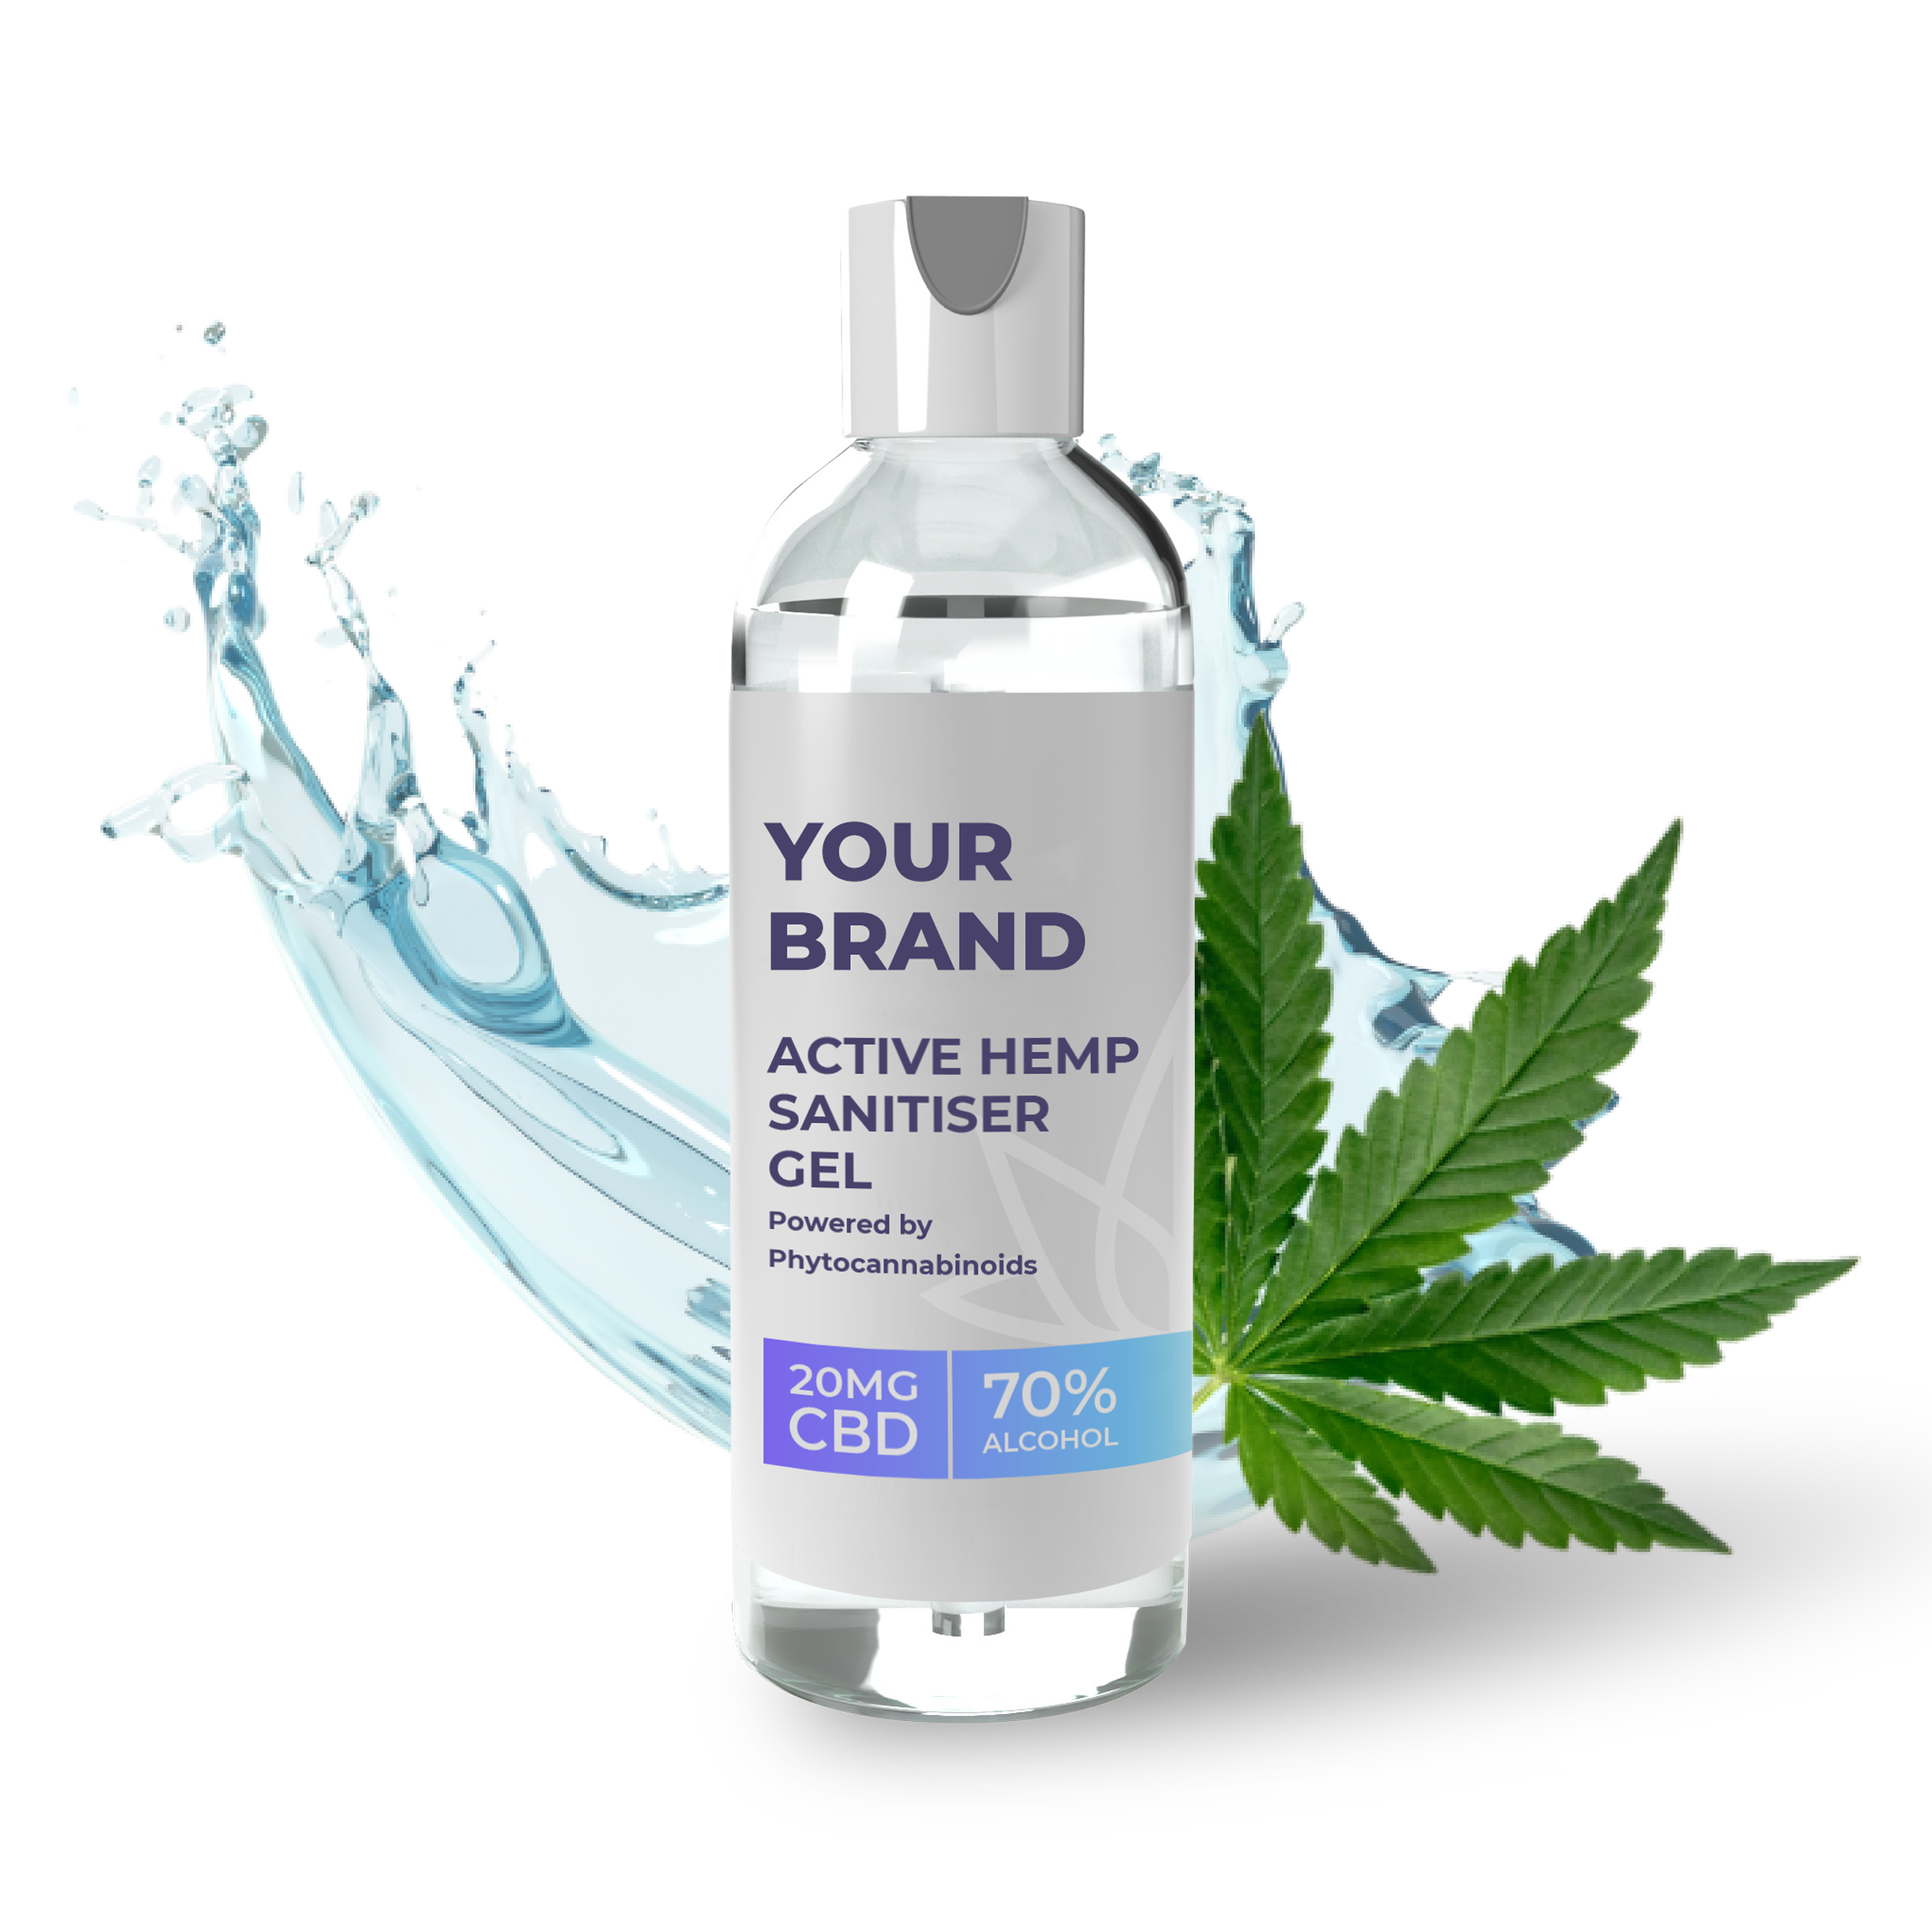 White & Private label Active Hemp CBD Sanitiser Gel supplied in a fully recyclable 100ml clear PET bottle with a fliptop